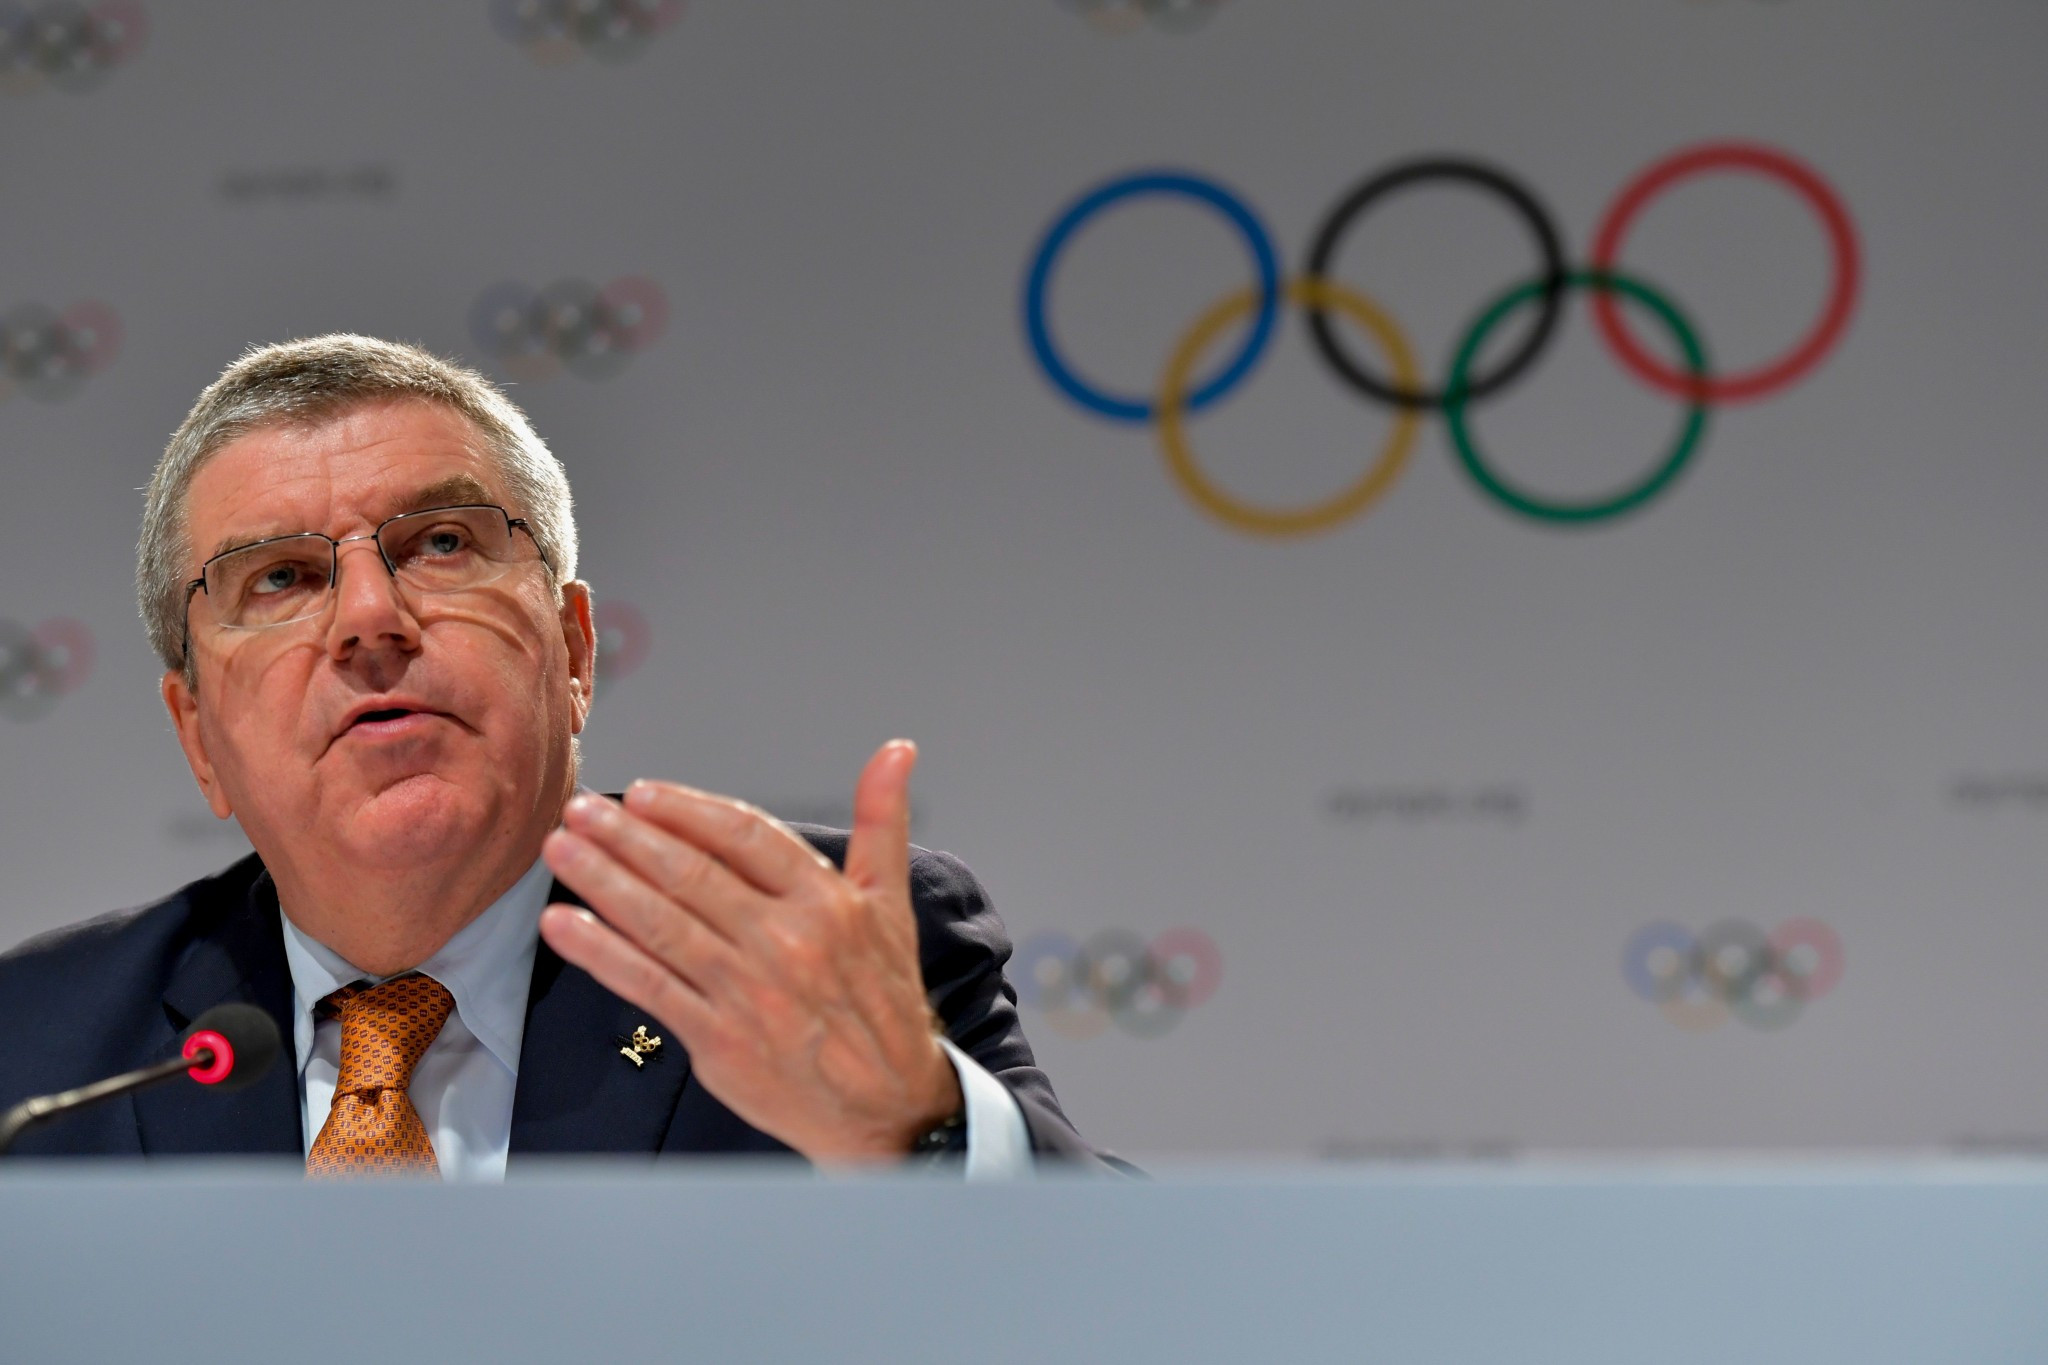 IOC President Thomas Bach admitted here this week that he had not watched Icarus ©Getty Images